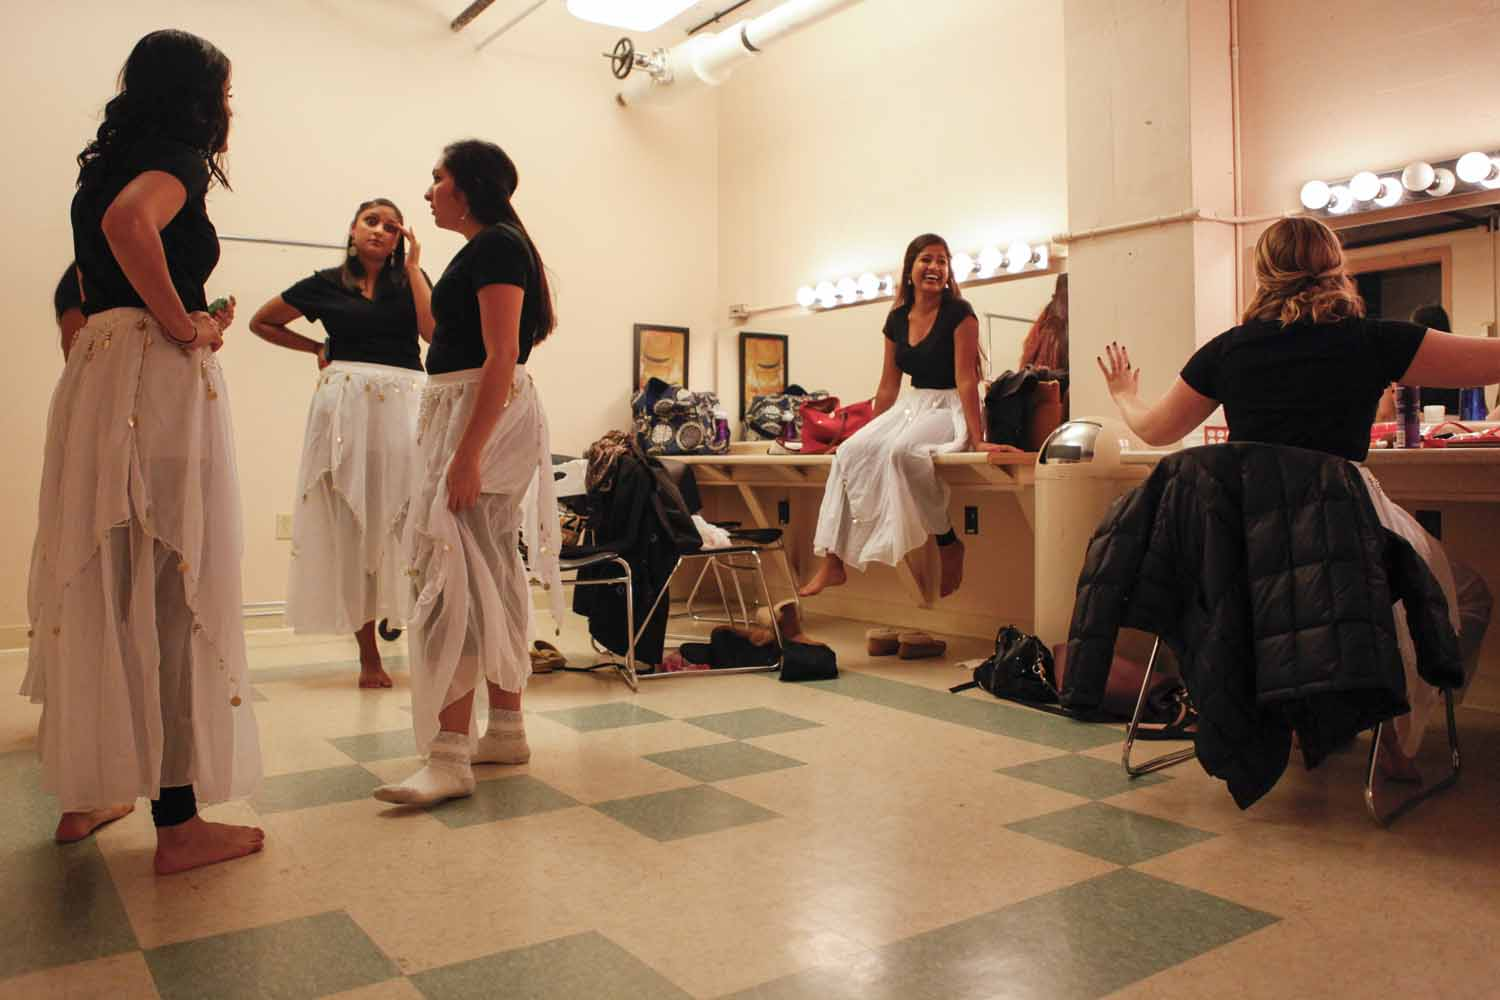 Members of Mizzou Masti converse with each other in the dressing room prior to their performance in India Nite at Jesse Hall.